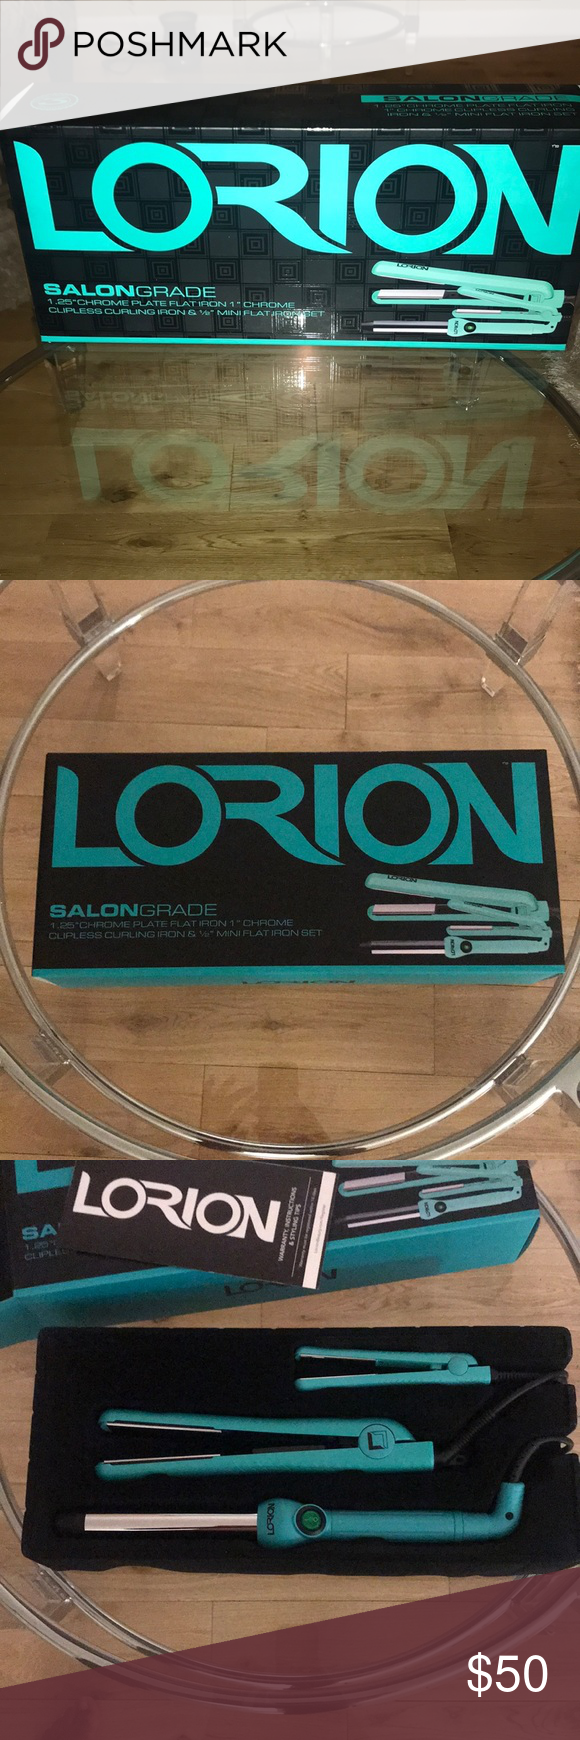 Lotion SalonGrade Flat Irons and Curling Iron Set 1.25 inch chrome plate flat iron, 1 inch chrome clip less curling iron and 1/2 inch mini flat iron set.  Never used.  Just opened for pic taking. Other #flatironwaves